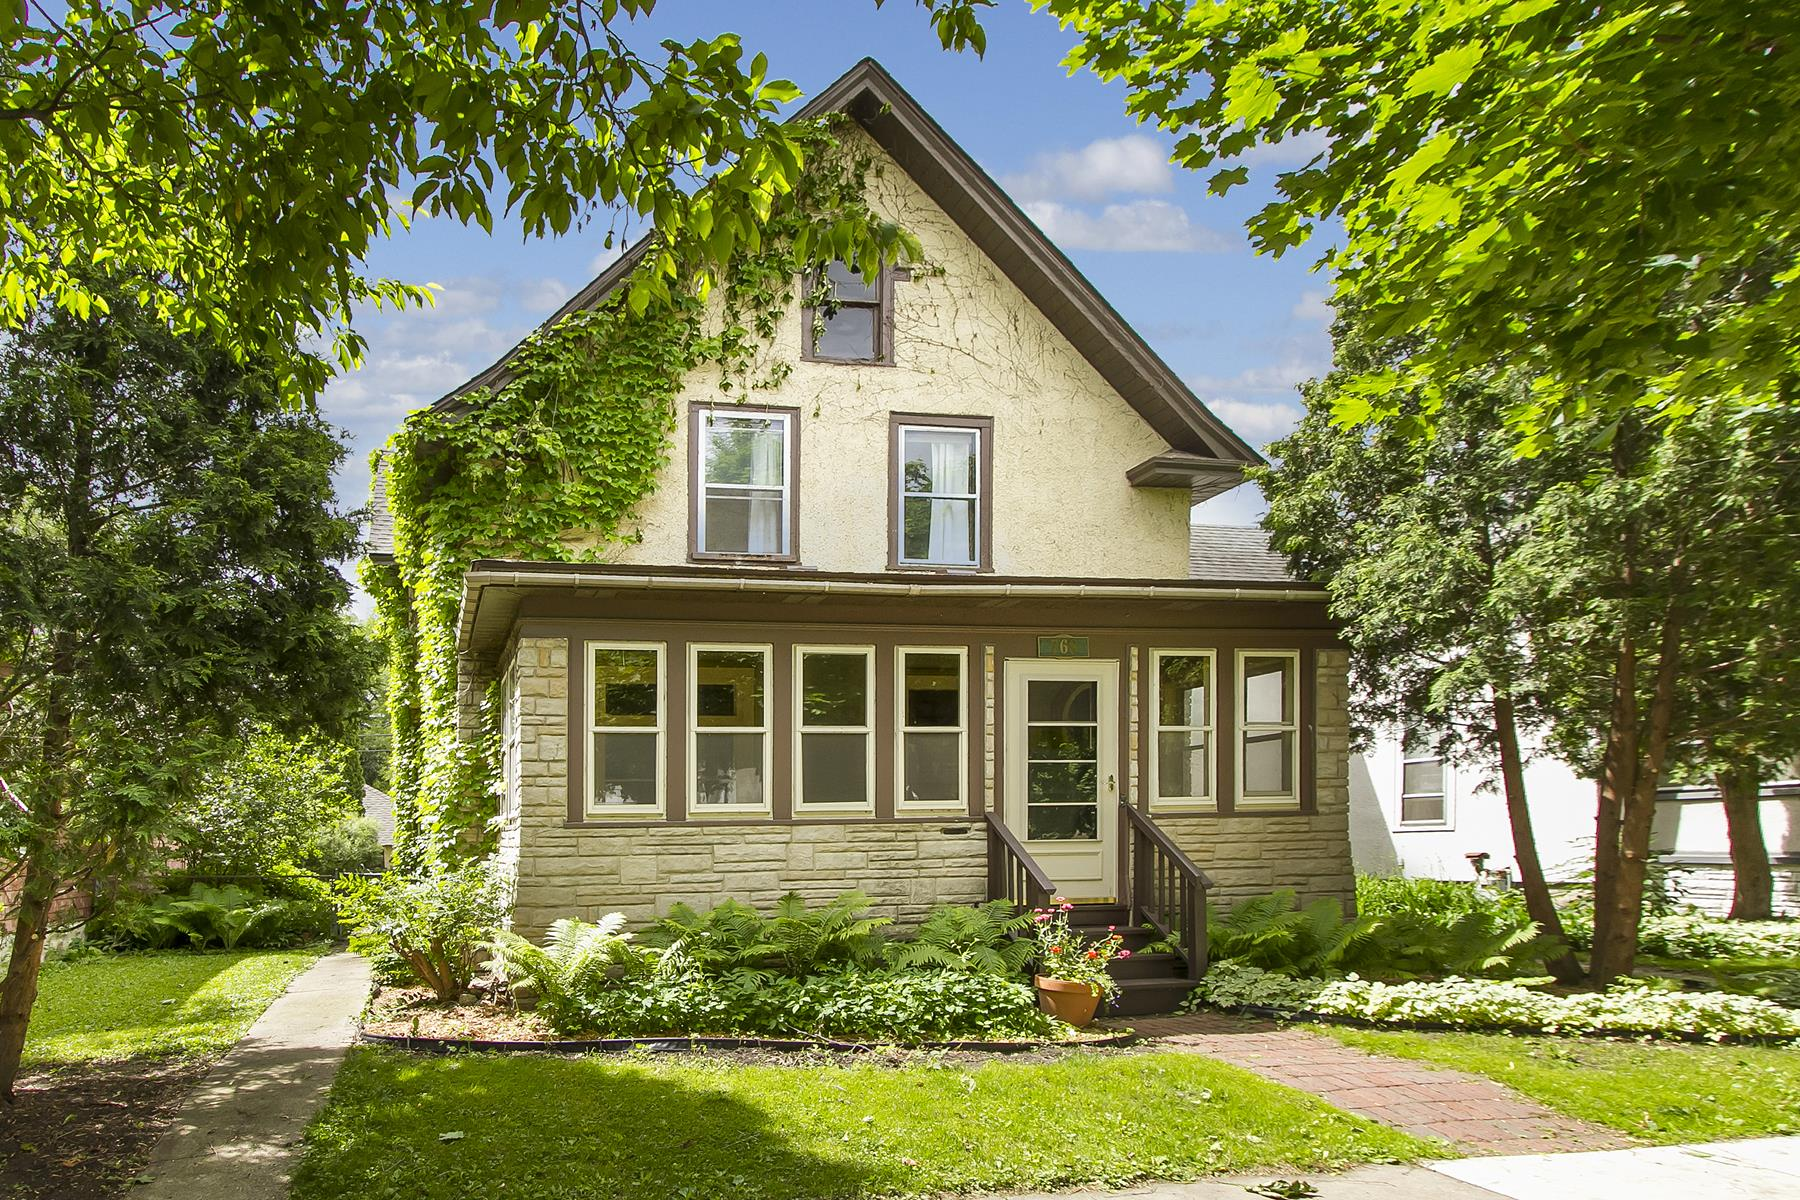 Casa Unifamiliar por un Venta en 768 James Avenue St. Paul, Minnesota, 55102 Estados Unidos